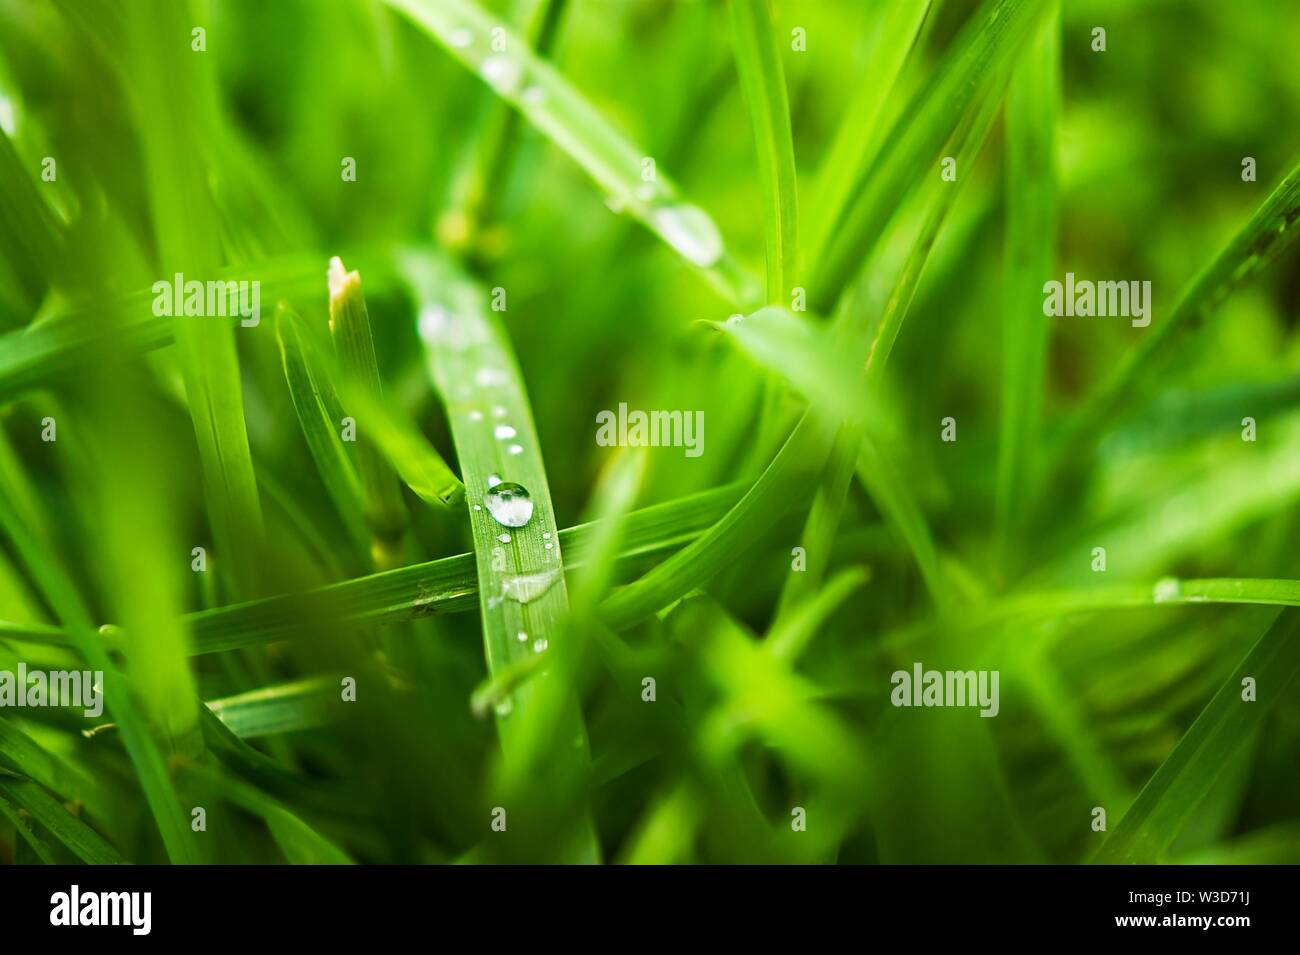 Macro Image of Morning Dew or Raindrops on Blades of Green Grass. - Stock Image